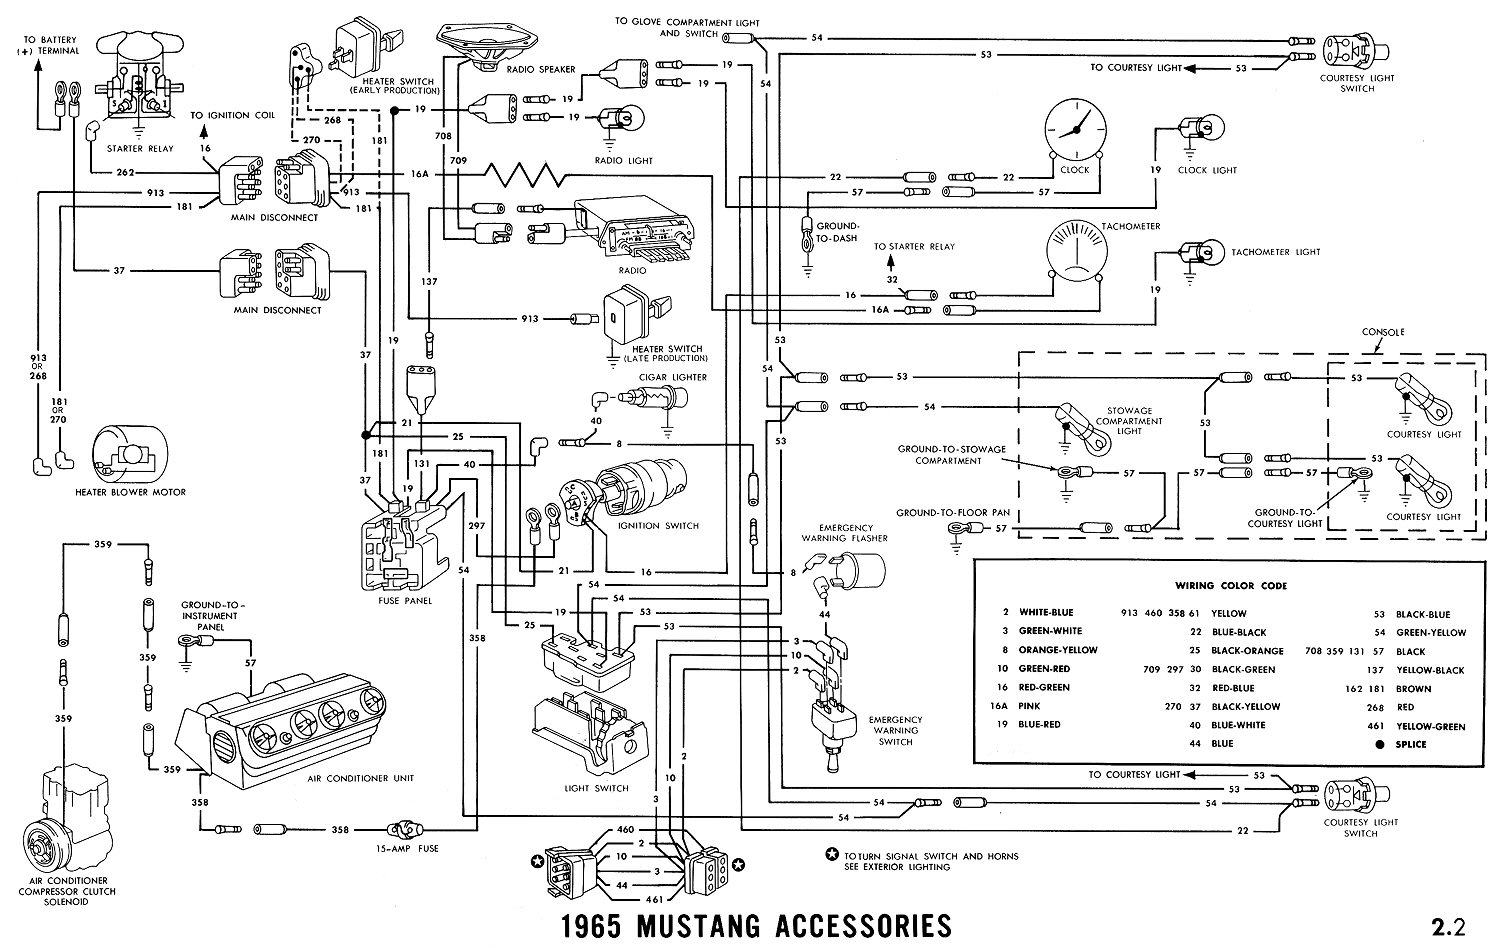 1965 Mustang Wiring Diagrams Average Joe Restoration 1946 Chevy Pickup Ignition Diagram Schematic Air Conditioner